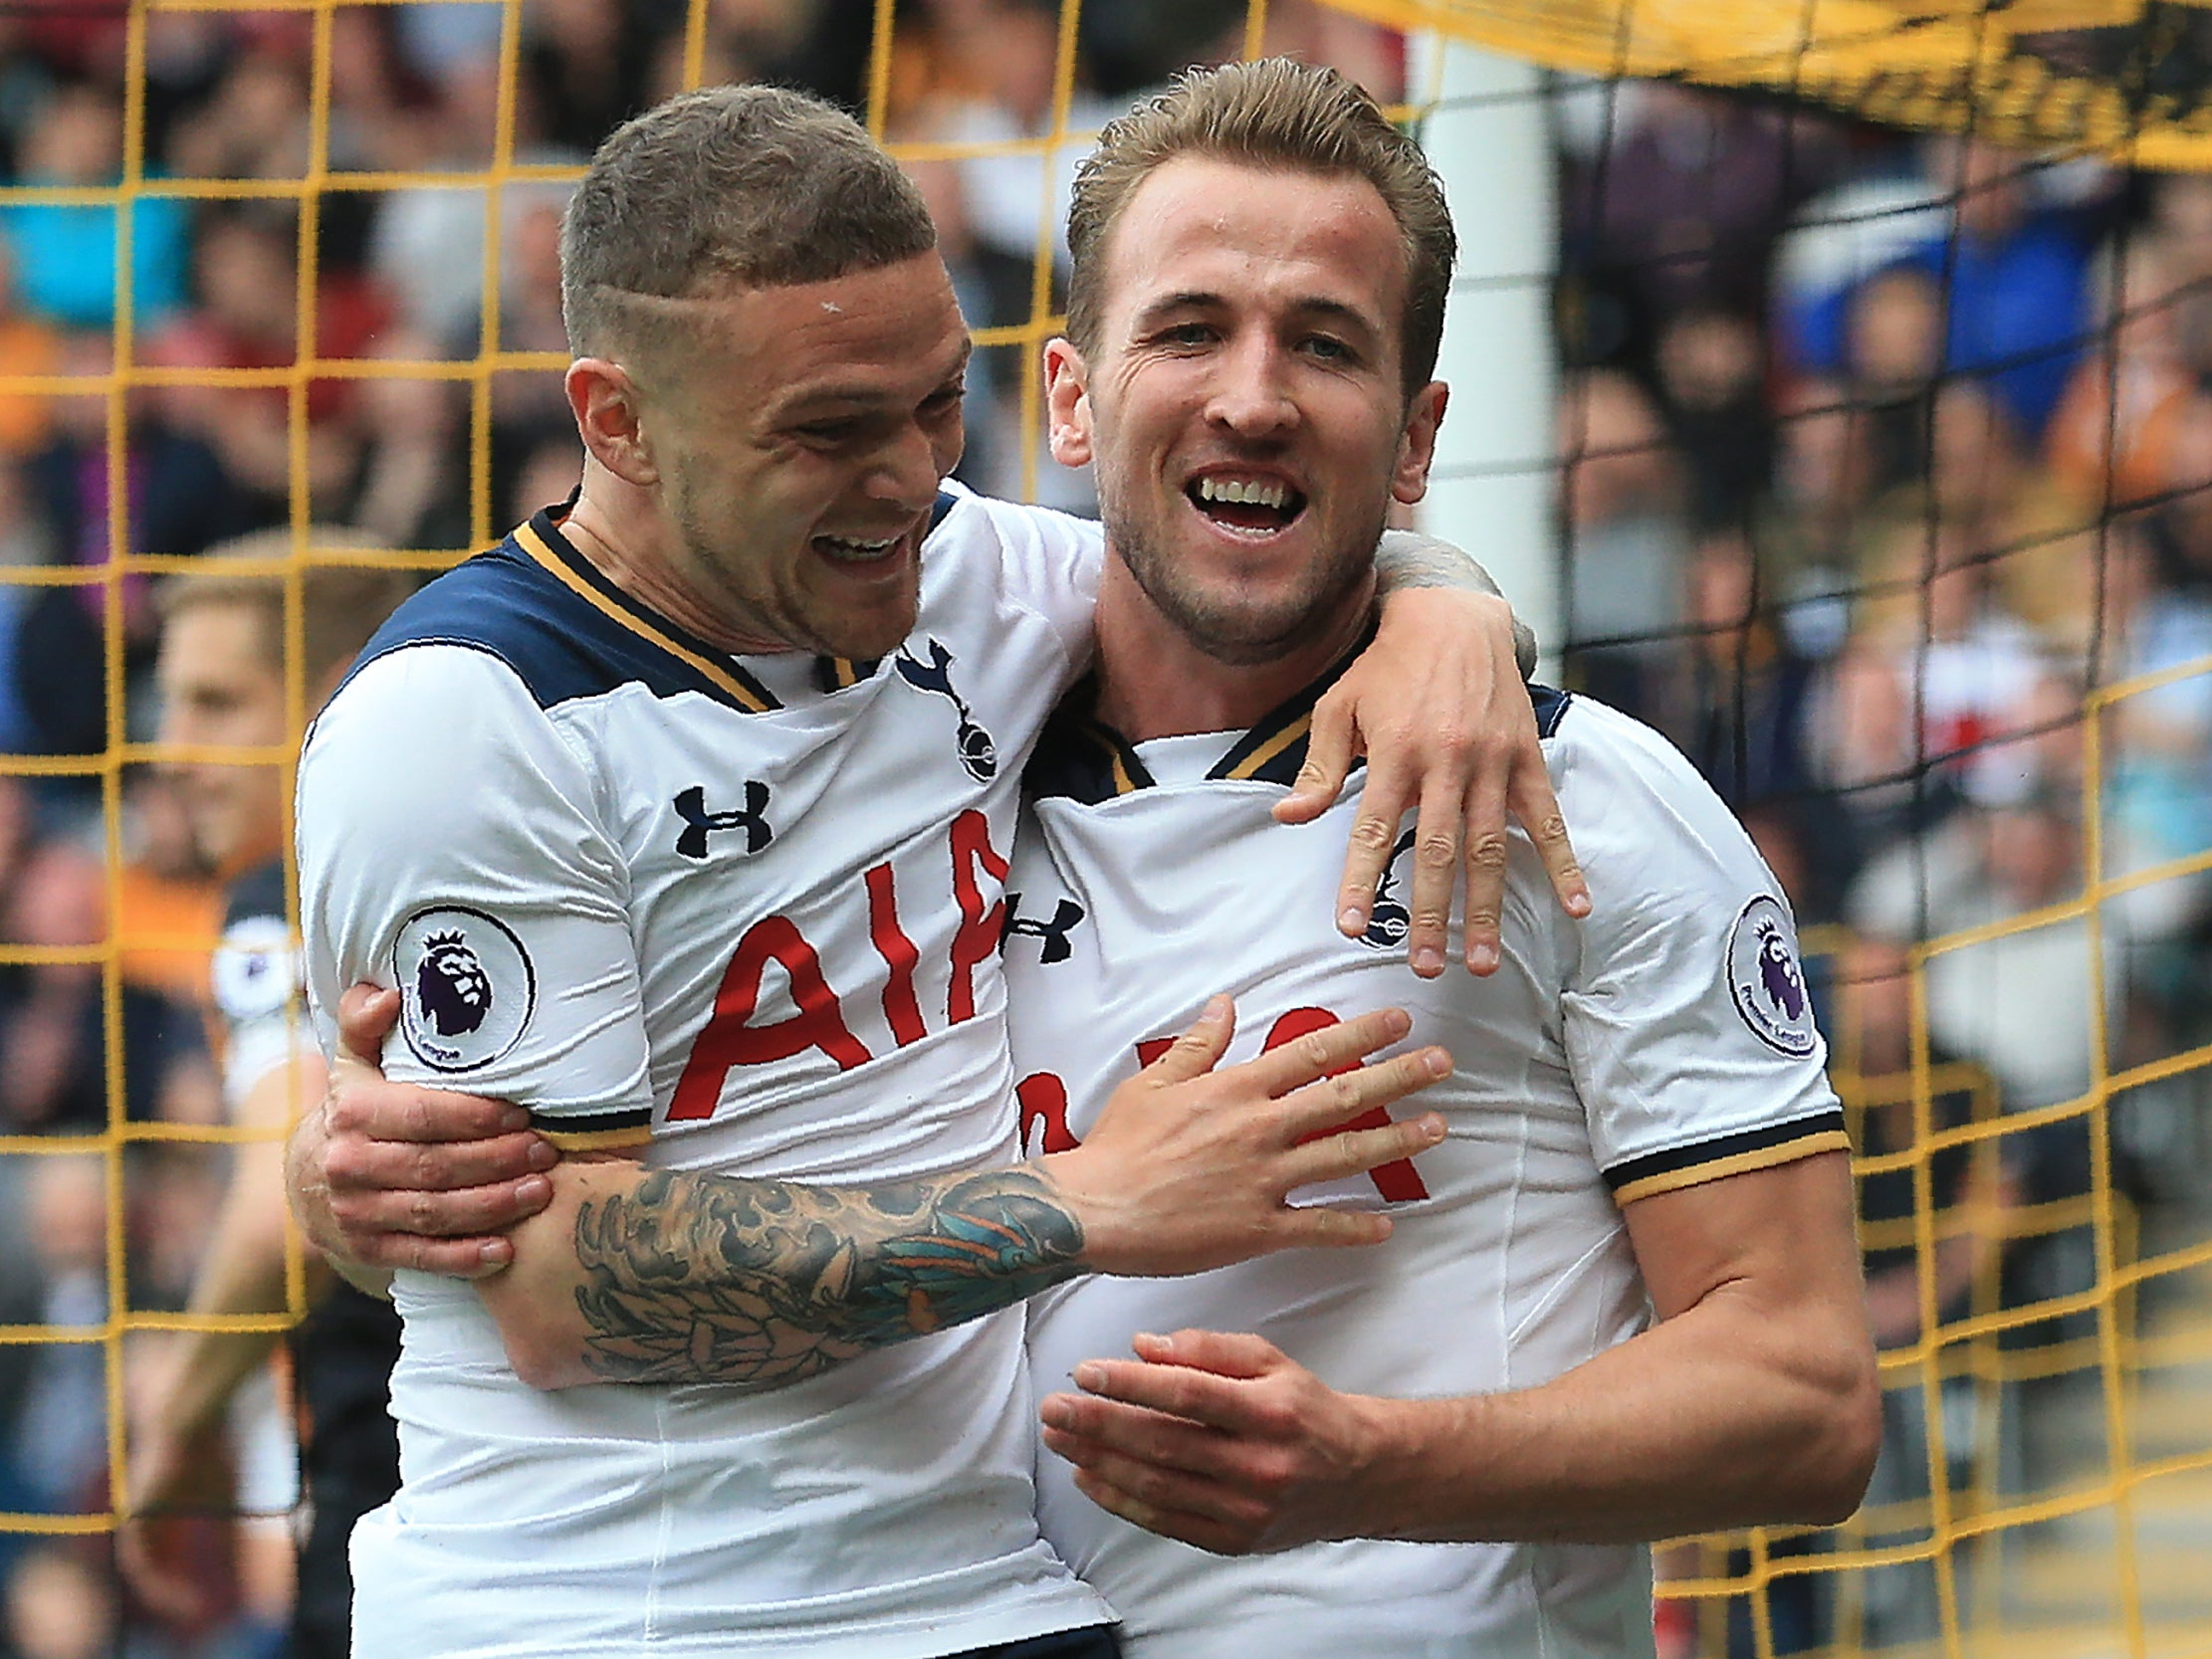 Tottenham in seventh heaven as Harry Kane hits a hat-trick in end of season flourish against relegated Hull